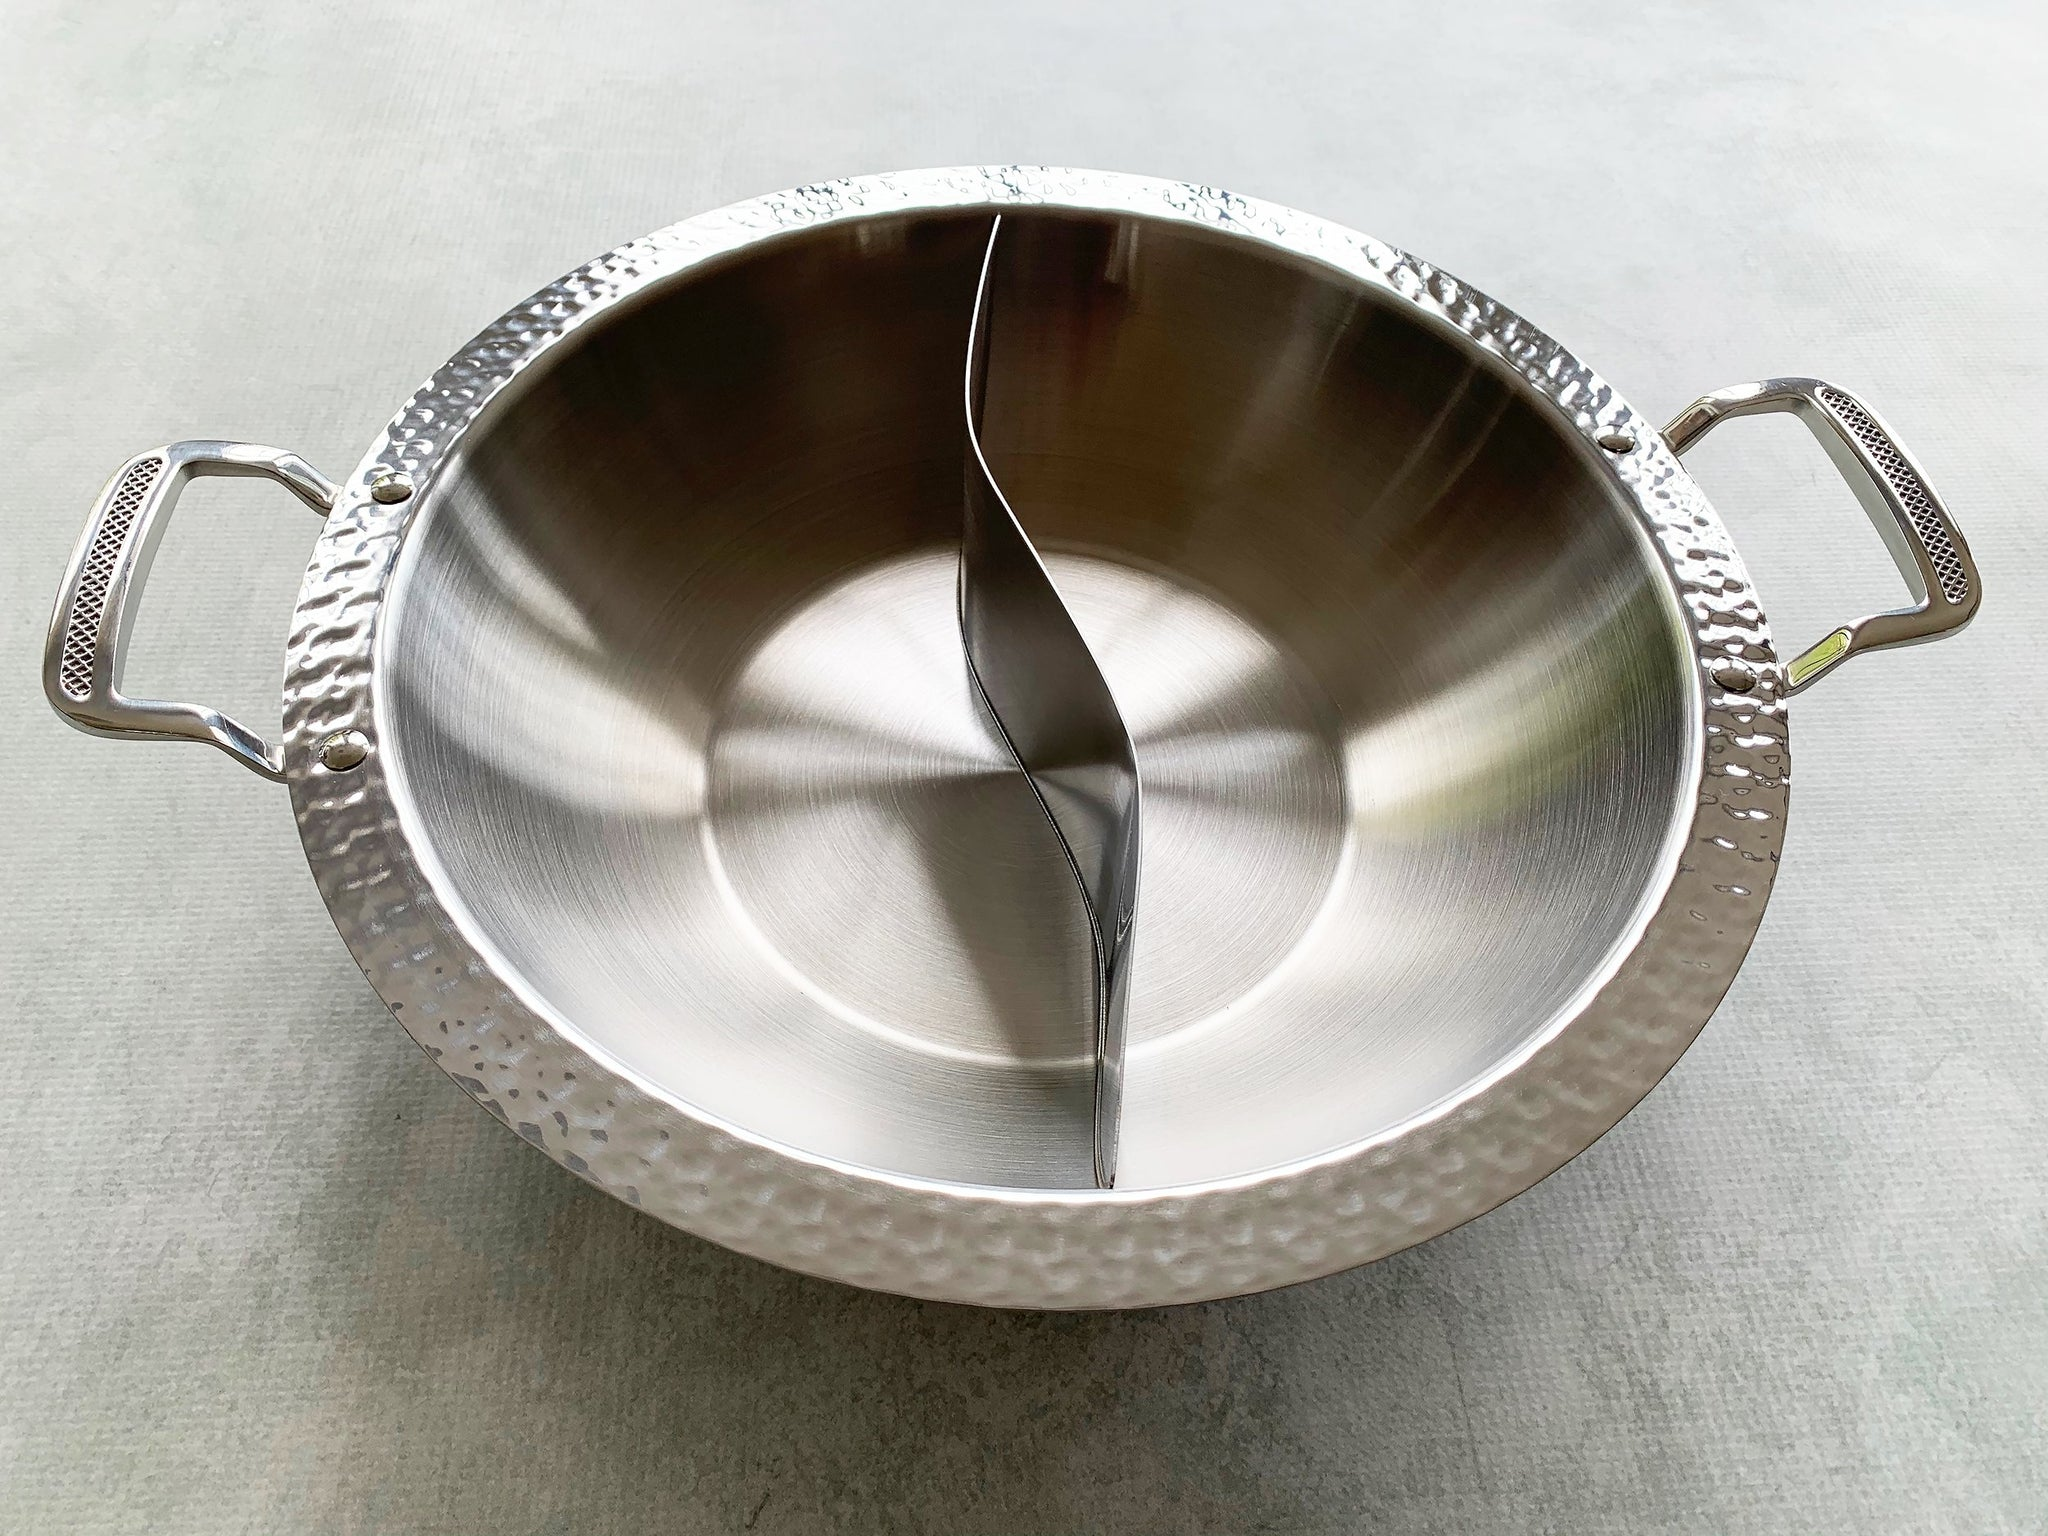 Yin-Yang Hot Pot (Heavy Gauge Stainless Steel)